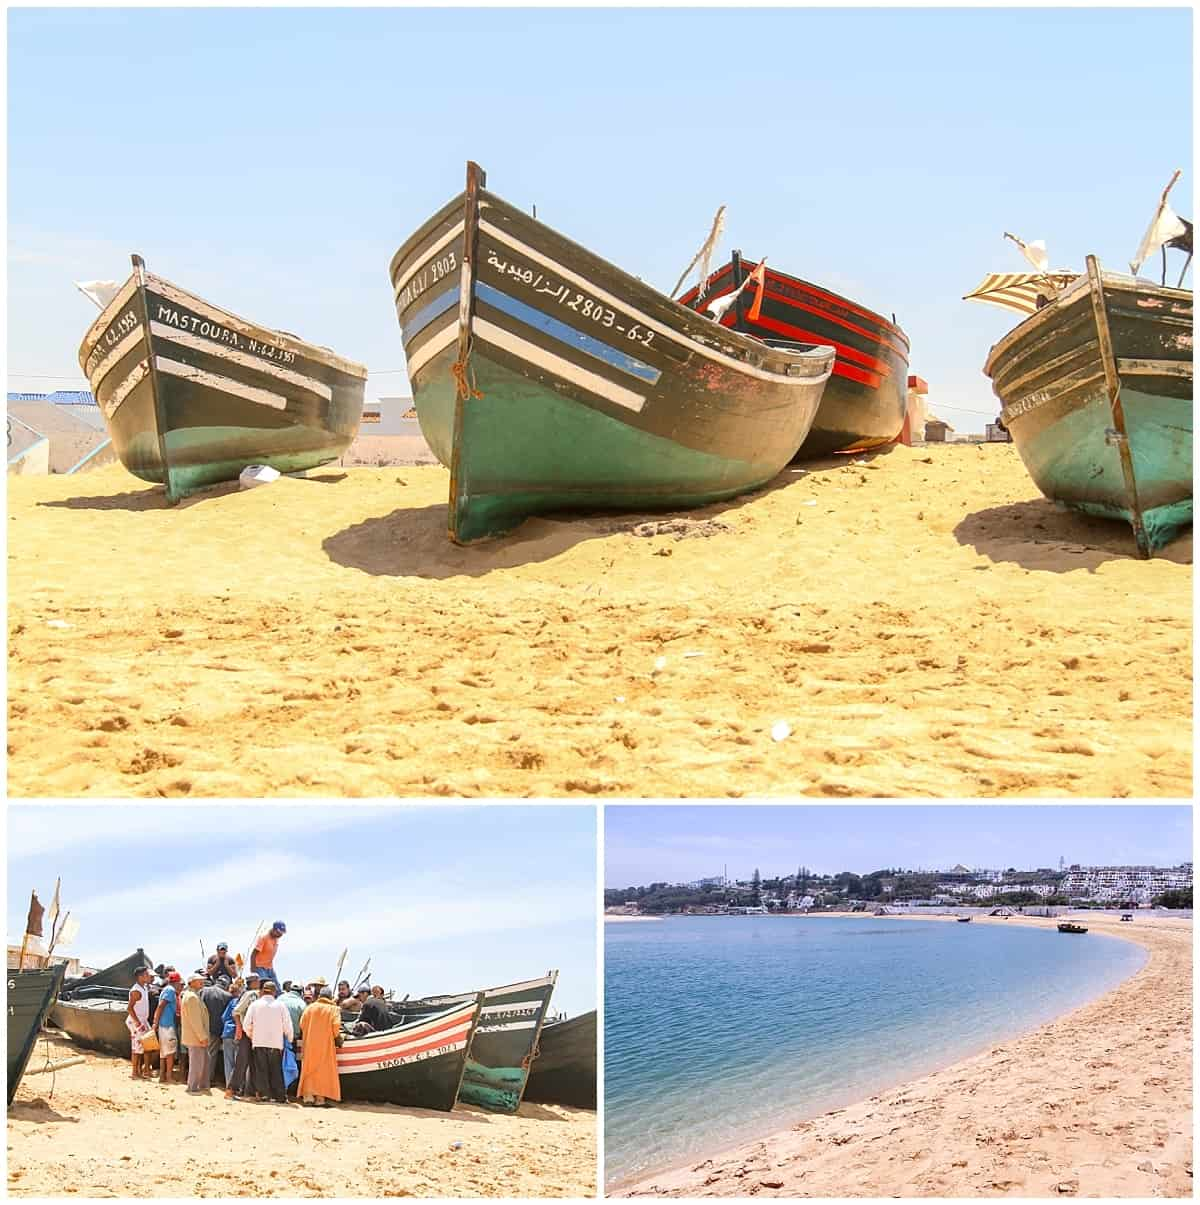 Oalidia Saltwater Lagoon in Morocco